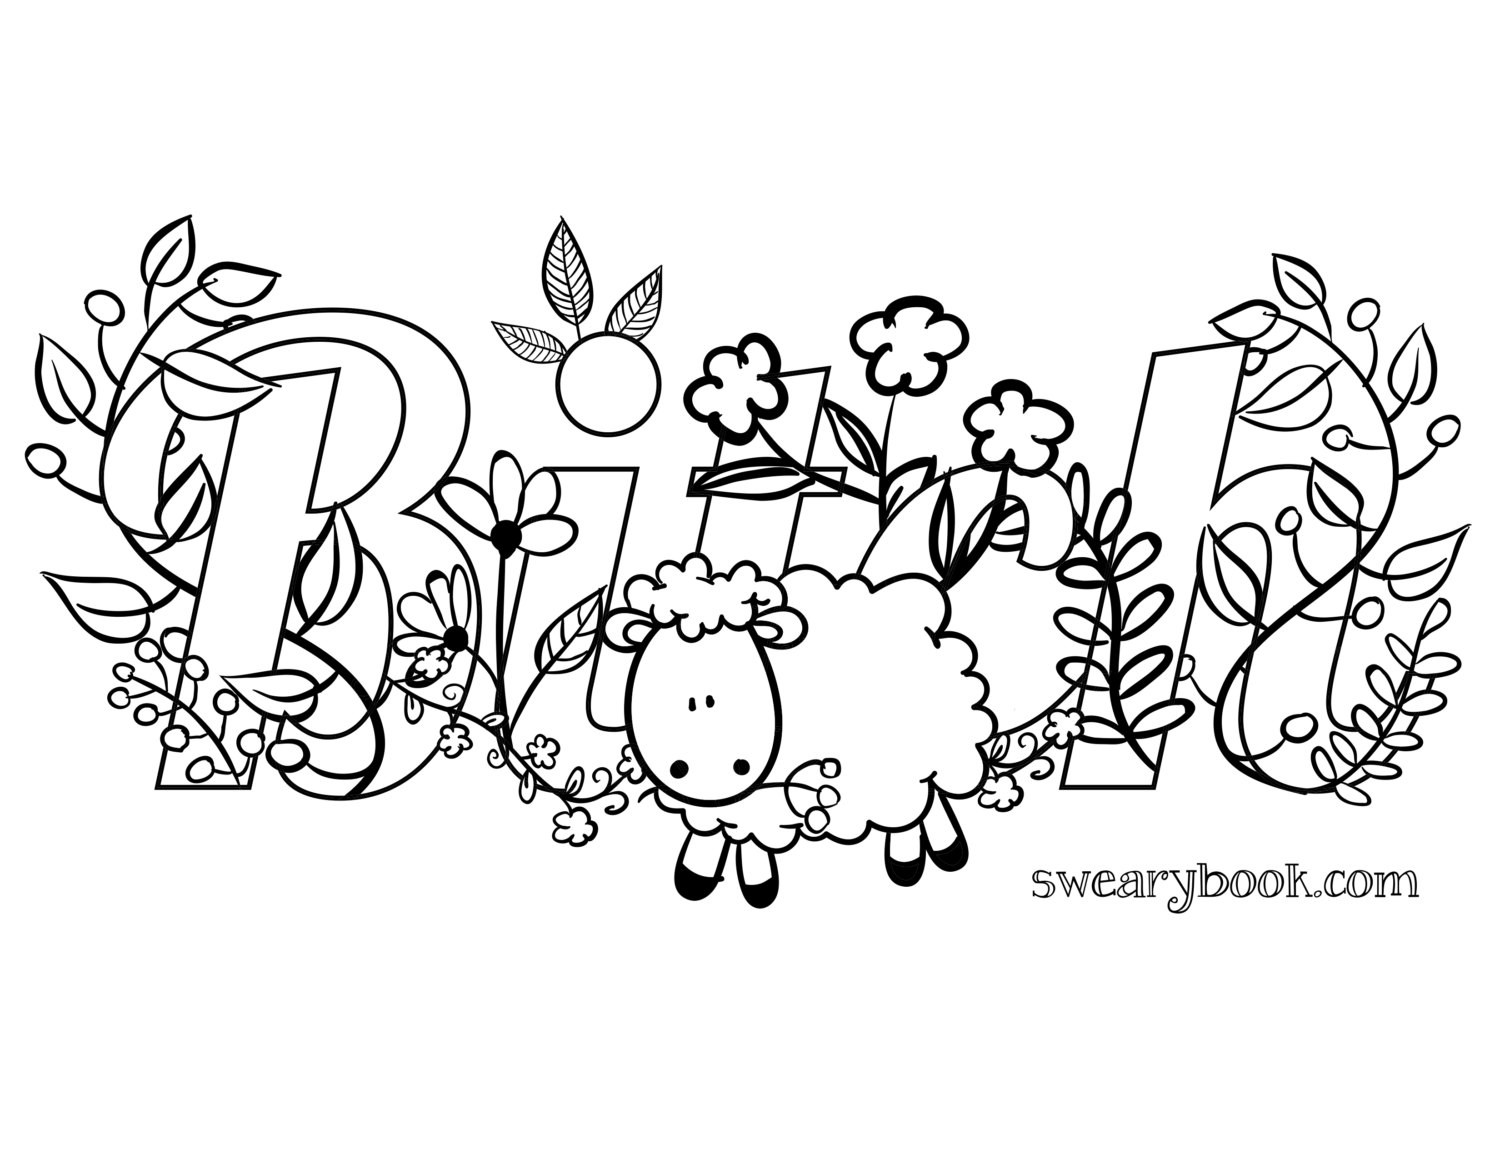 1500x1159 To Swear Word Coloring Pages Printable Fototo Me Best